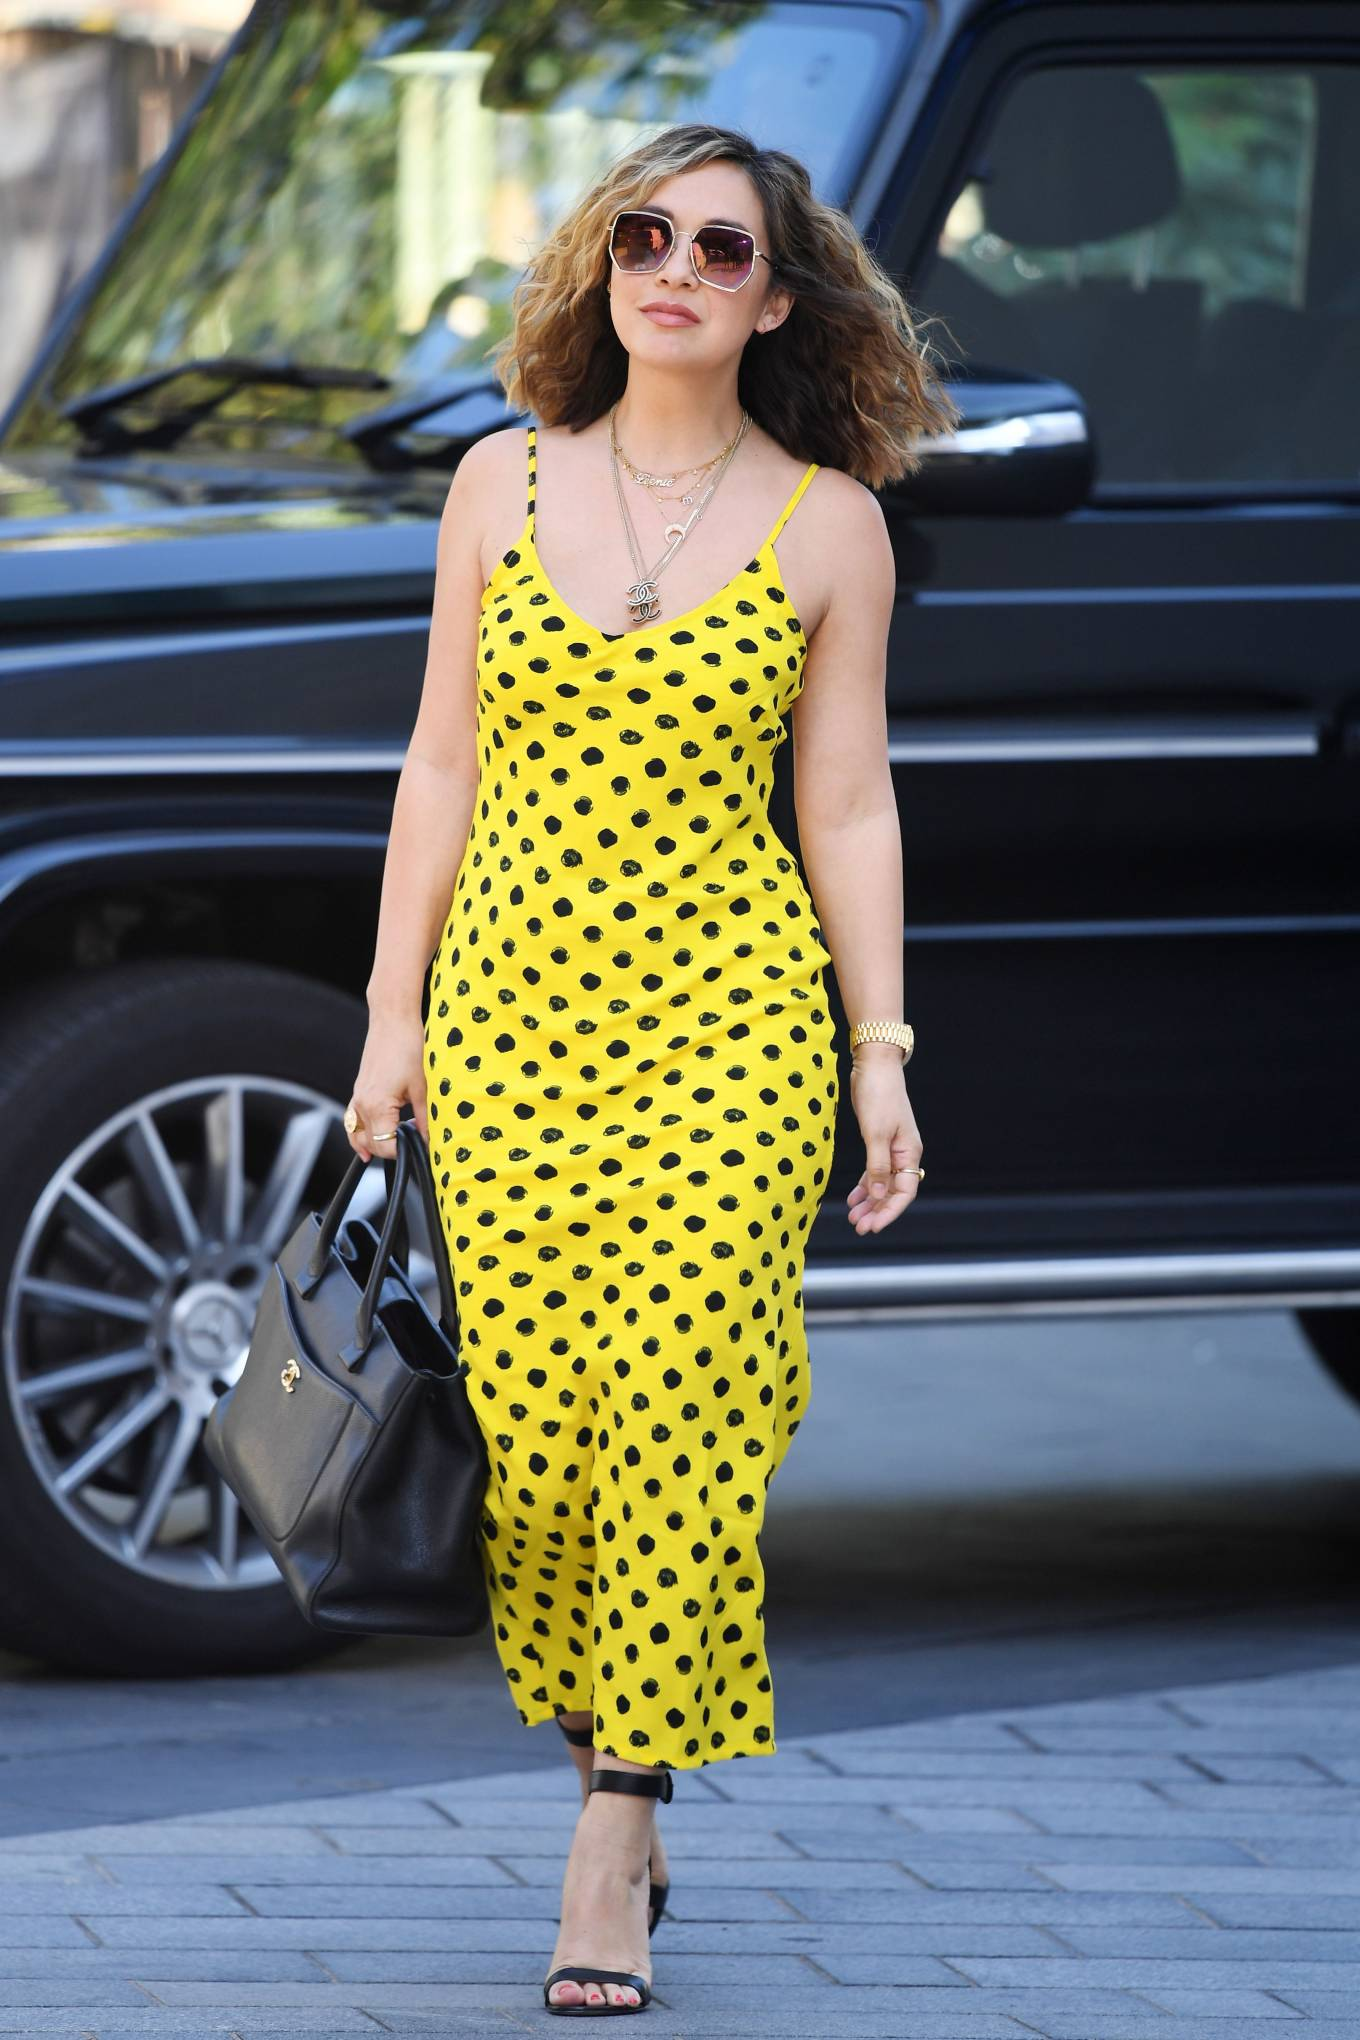 Myleene Klass 2020 : Myleene Klass – In yellow polka dot dress in London-25